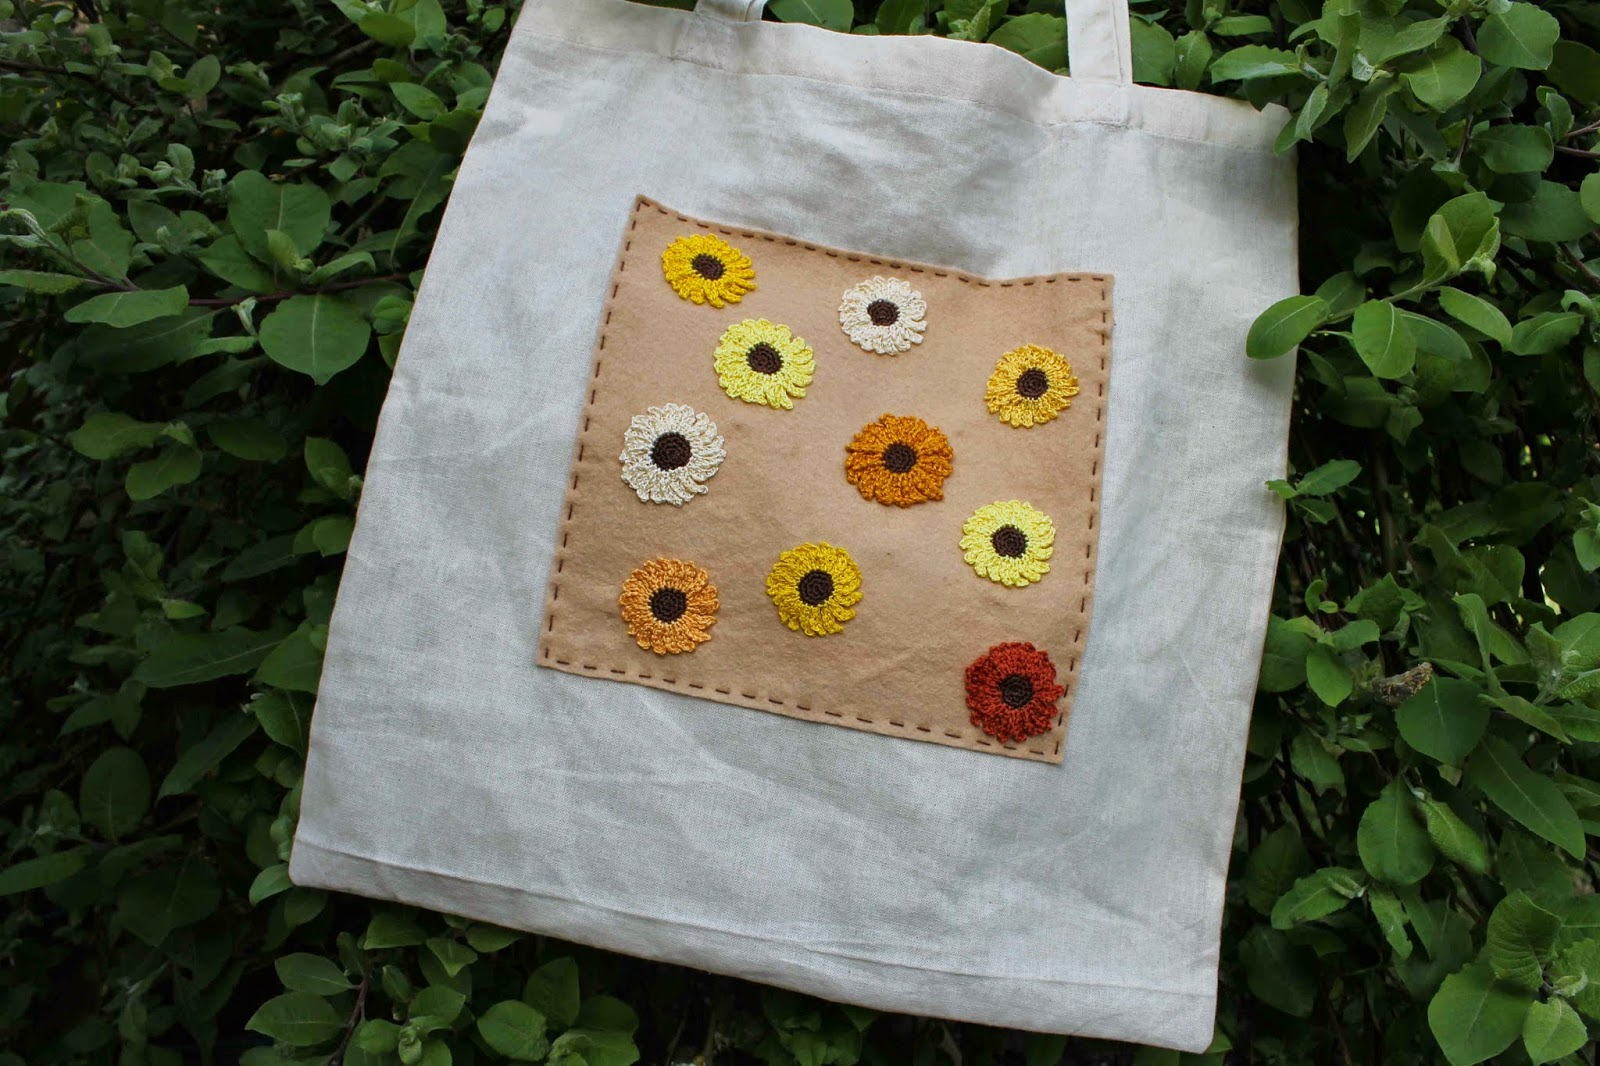 Finished crochet sunflower tote bag